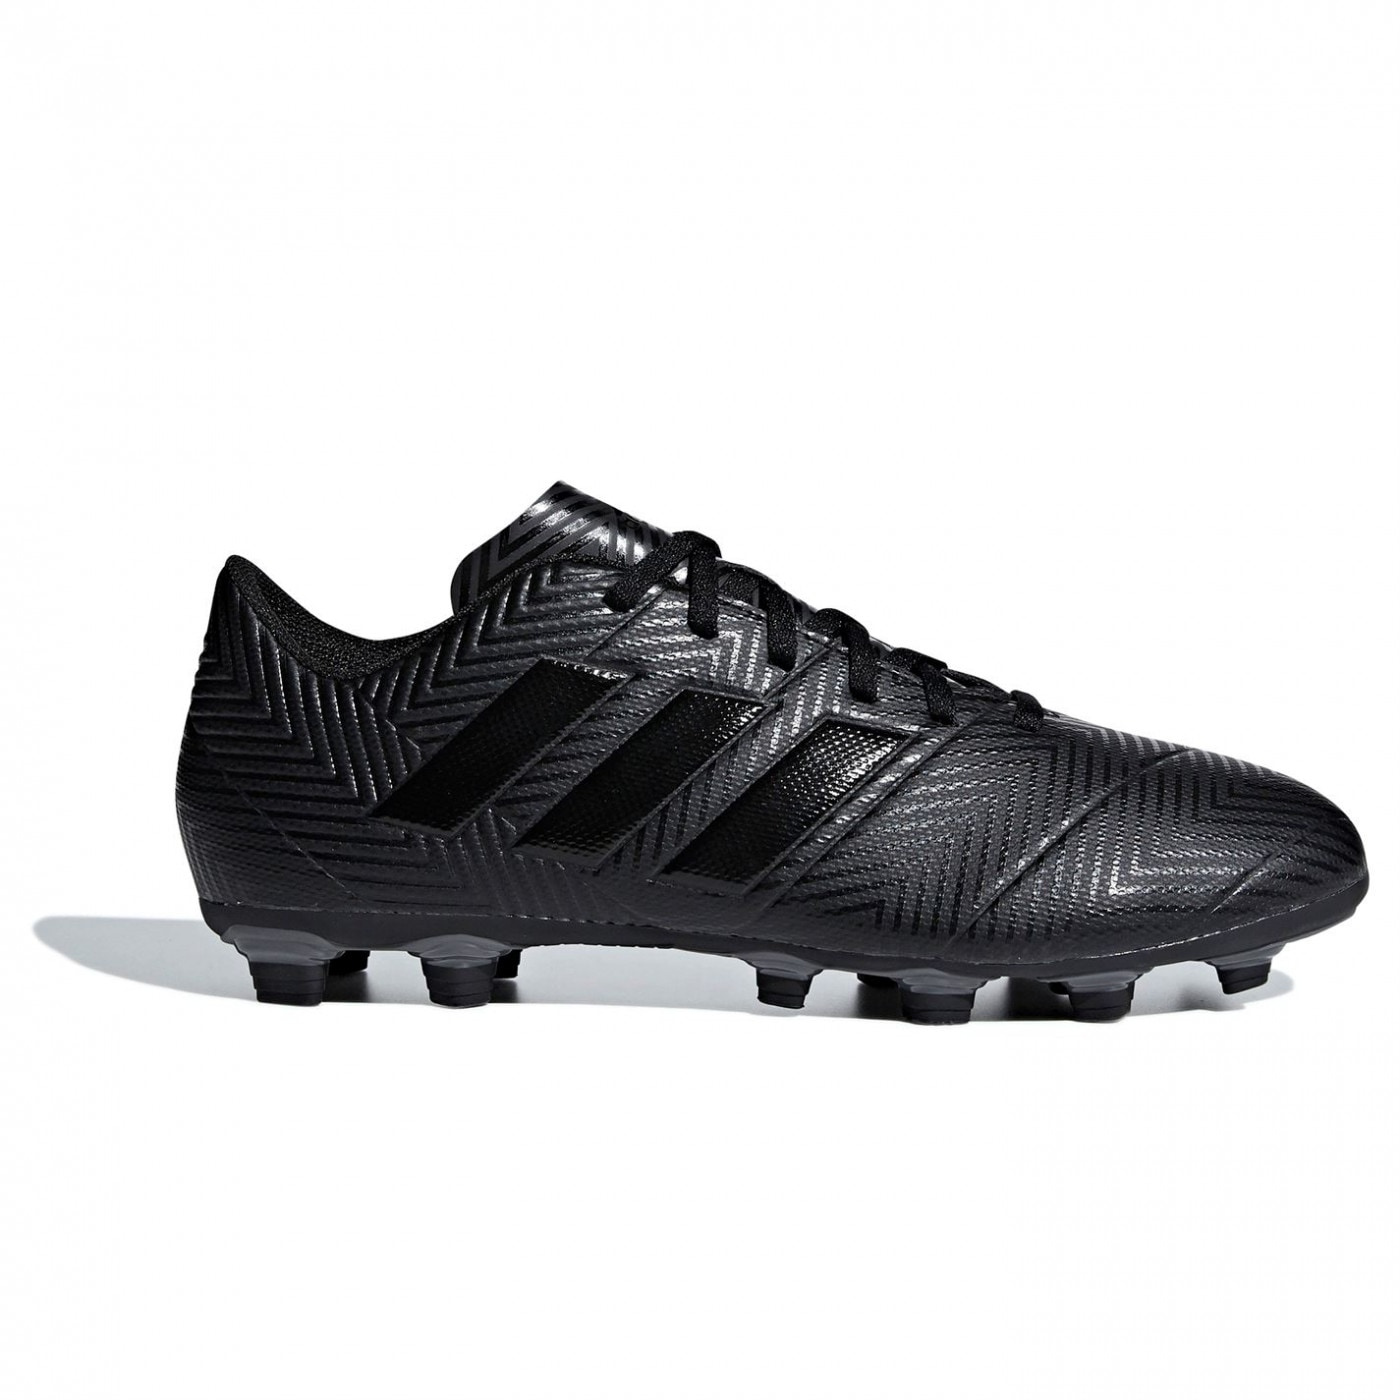 Adidas Nemeziz 18.4 Mens FG Football Boots